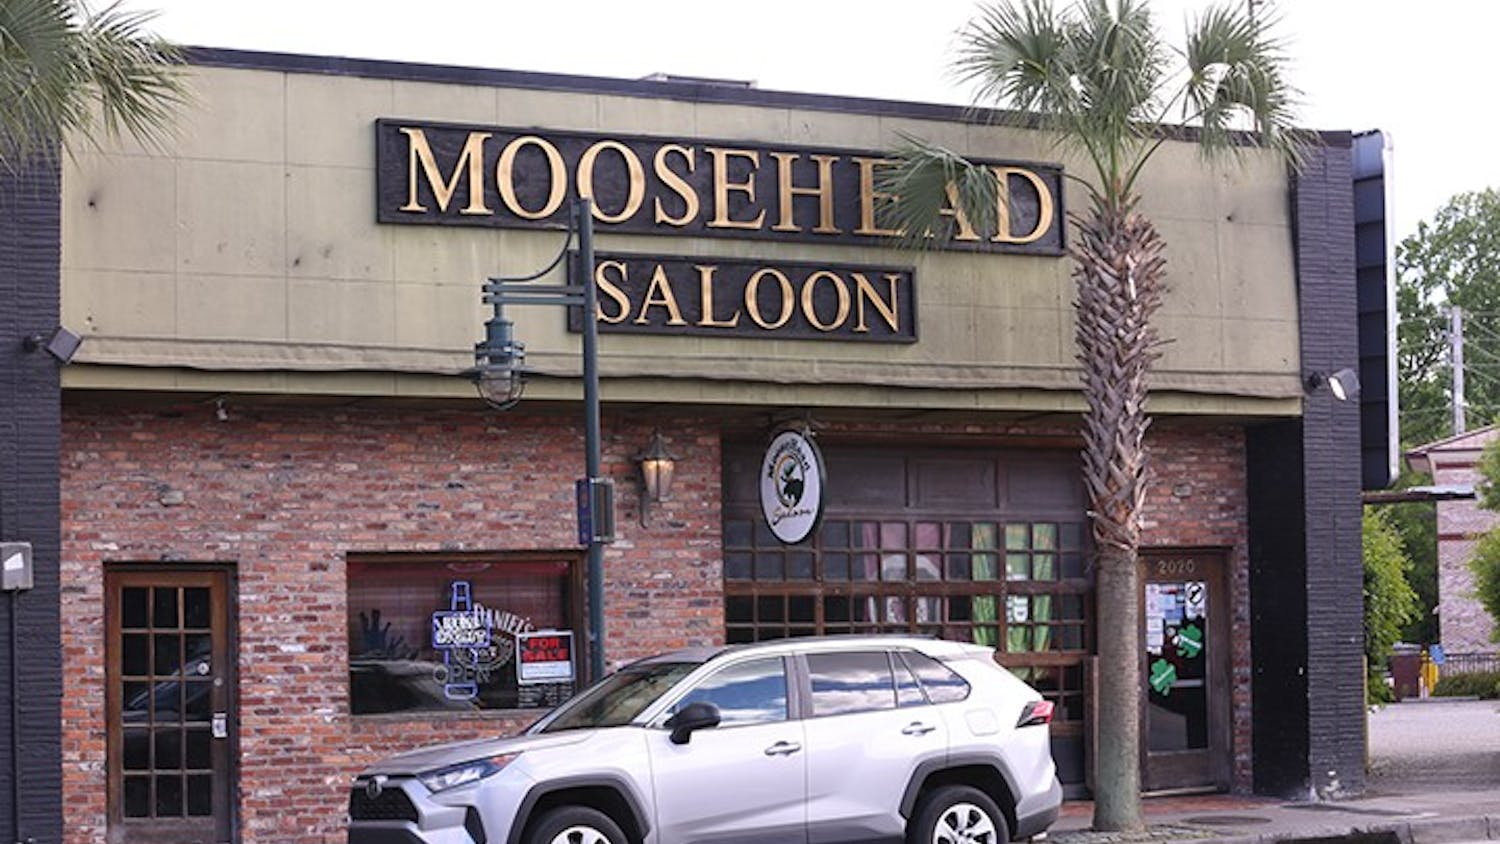 The Moosehead Saloon, a bar in Five Points, has recently gone up for sale after a series of bar closings.